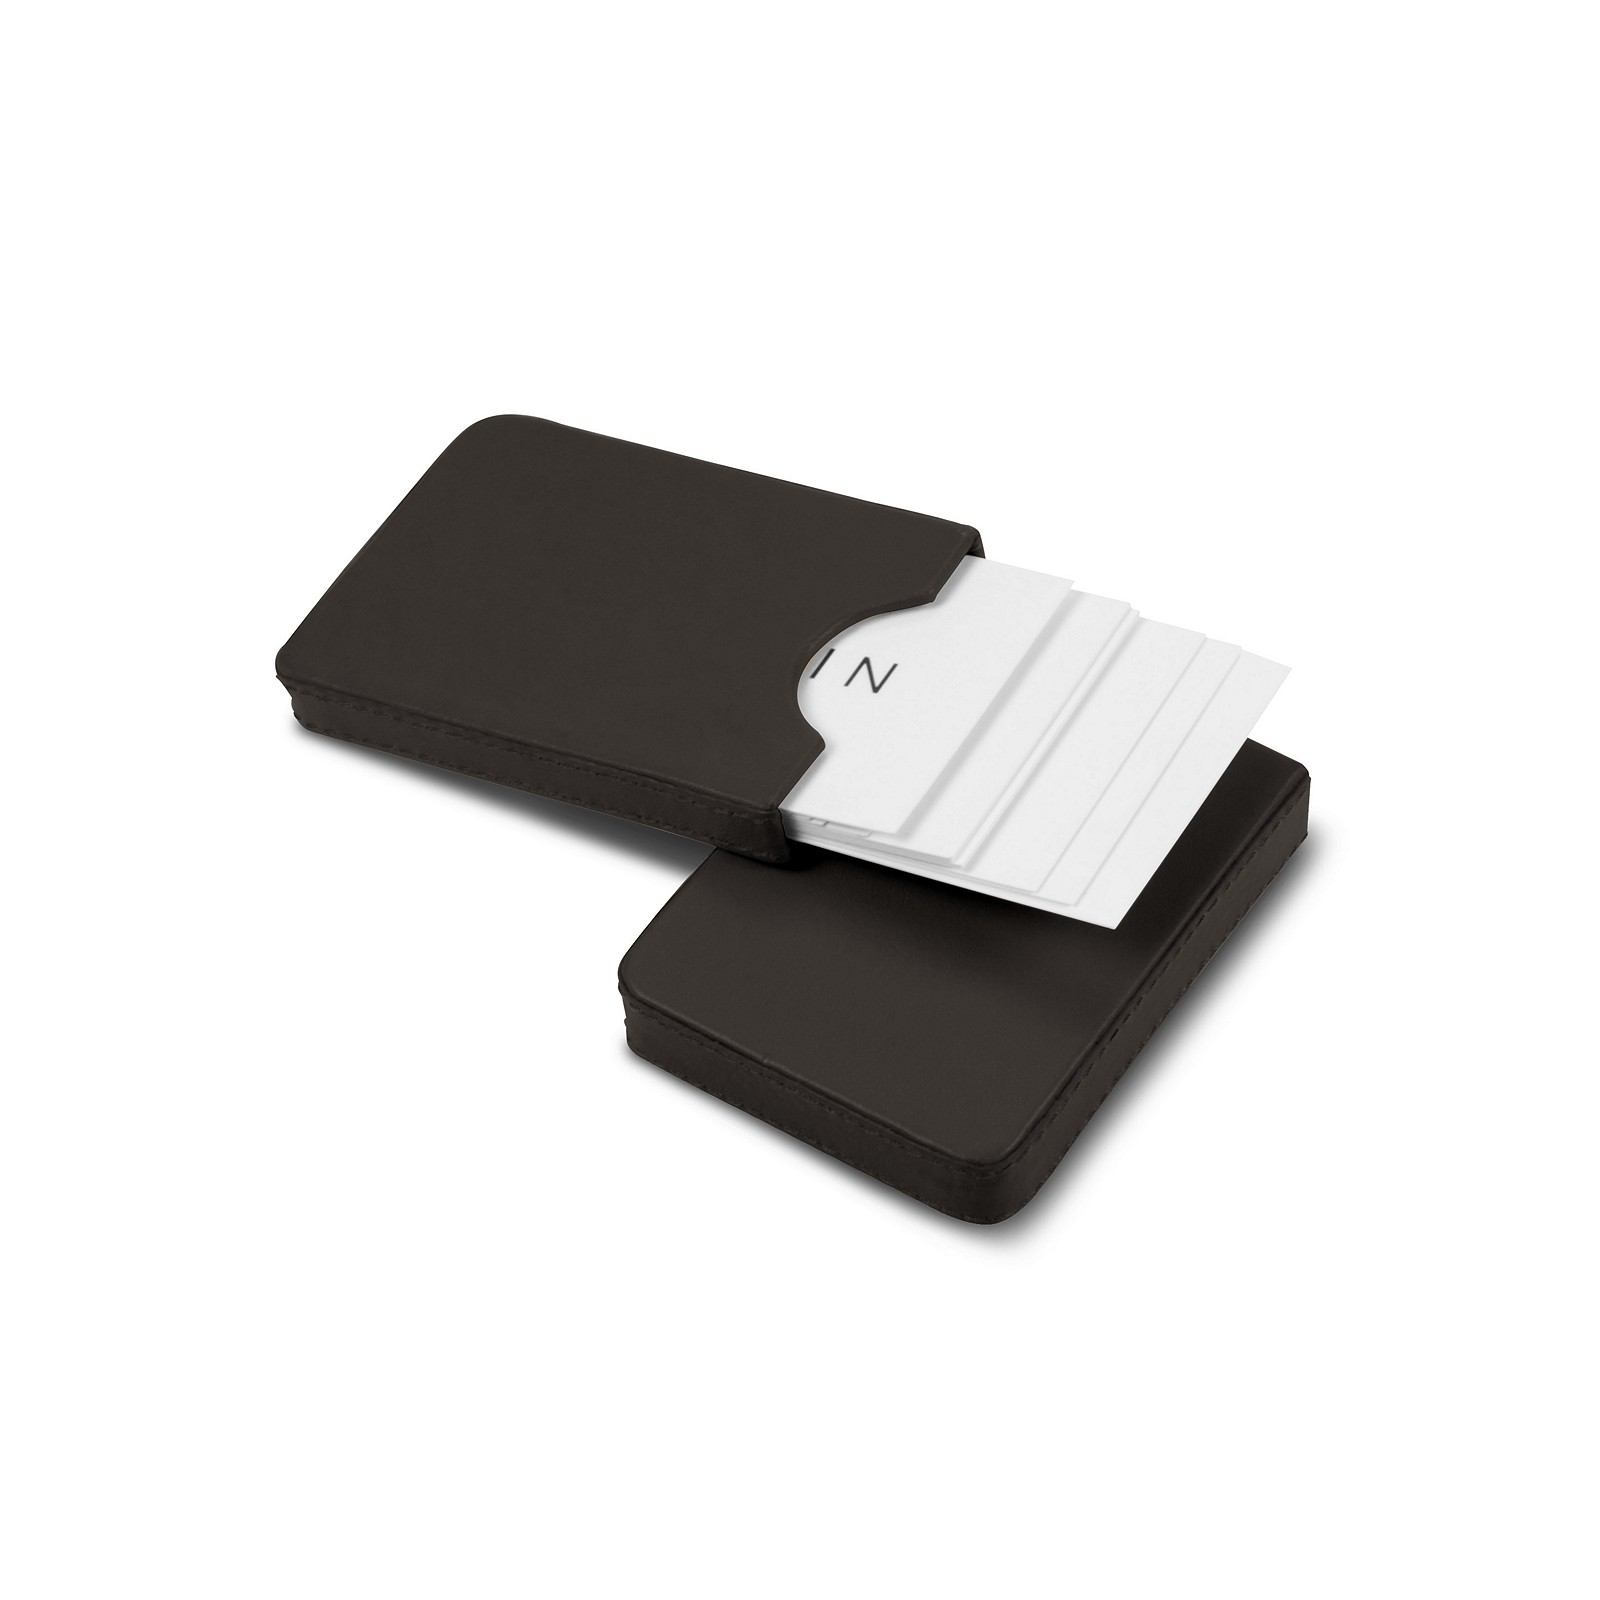 Leather Sliding two-parts case for business cards